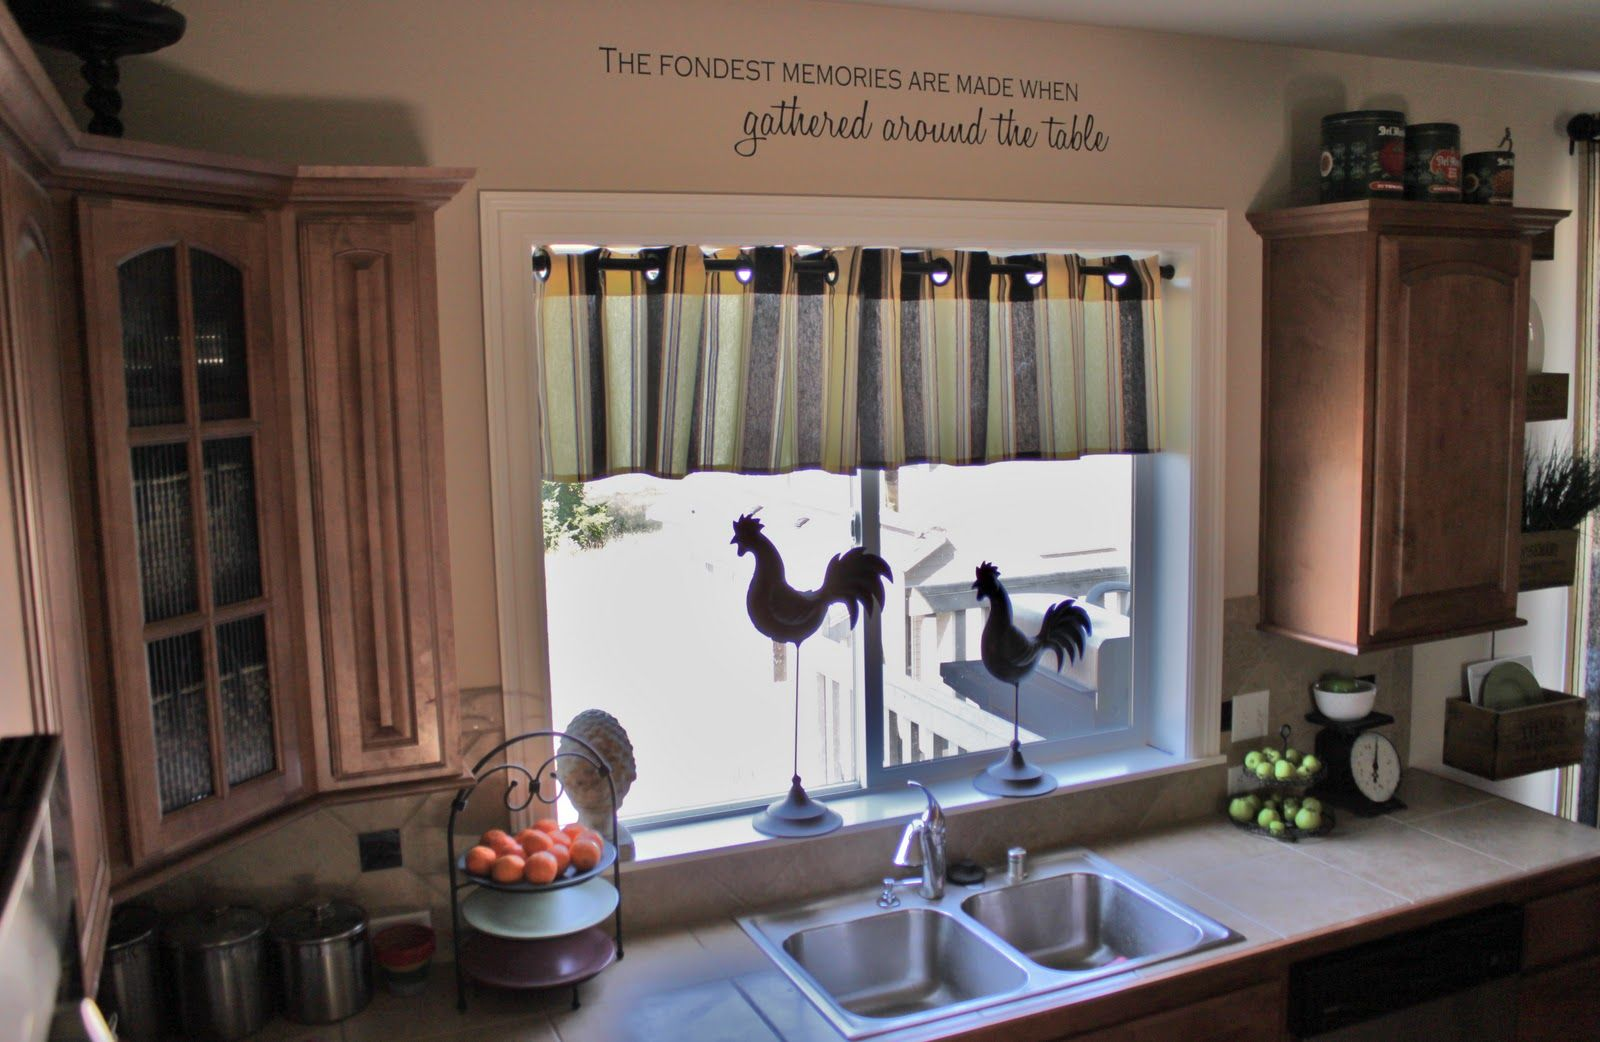 Classic Kitchen Designing Ideas With Floating Wooden Cabinet And Third  Stripes Curtain Covering Window